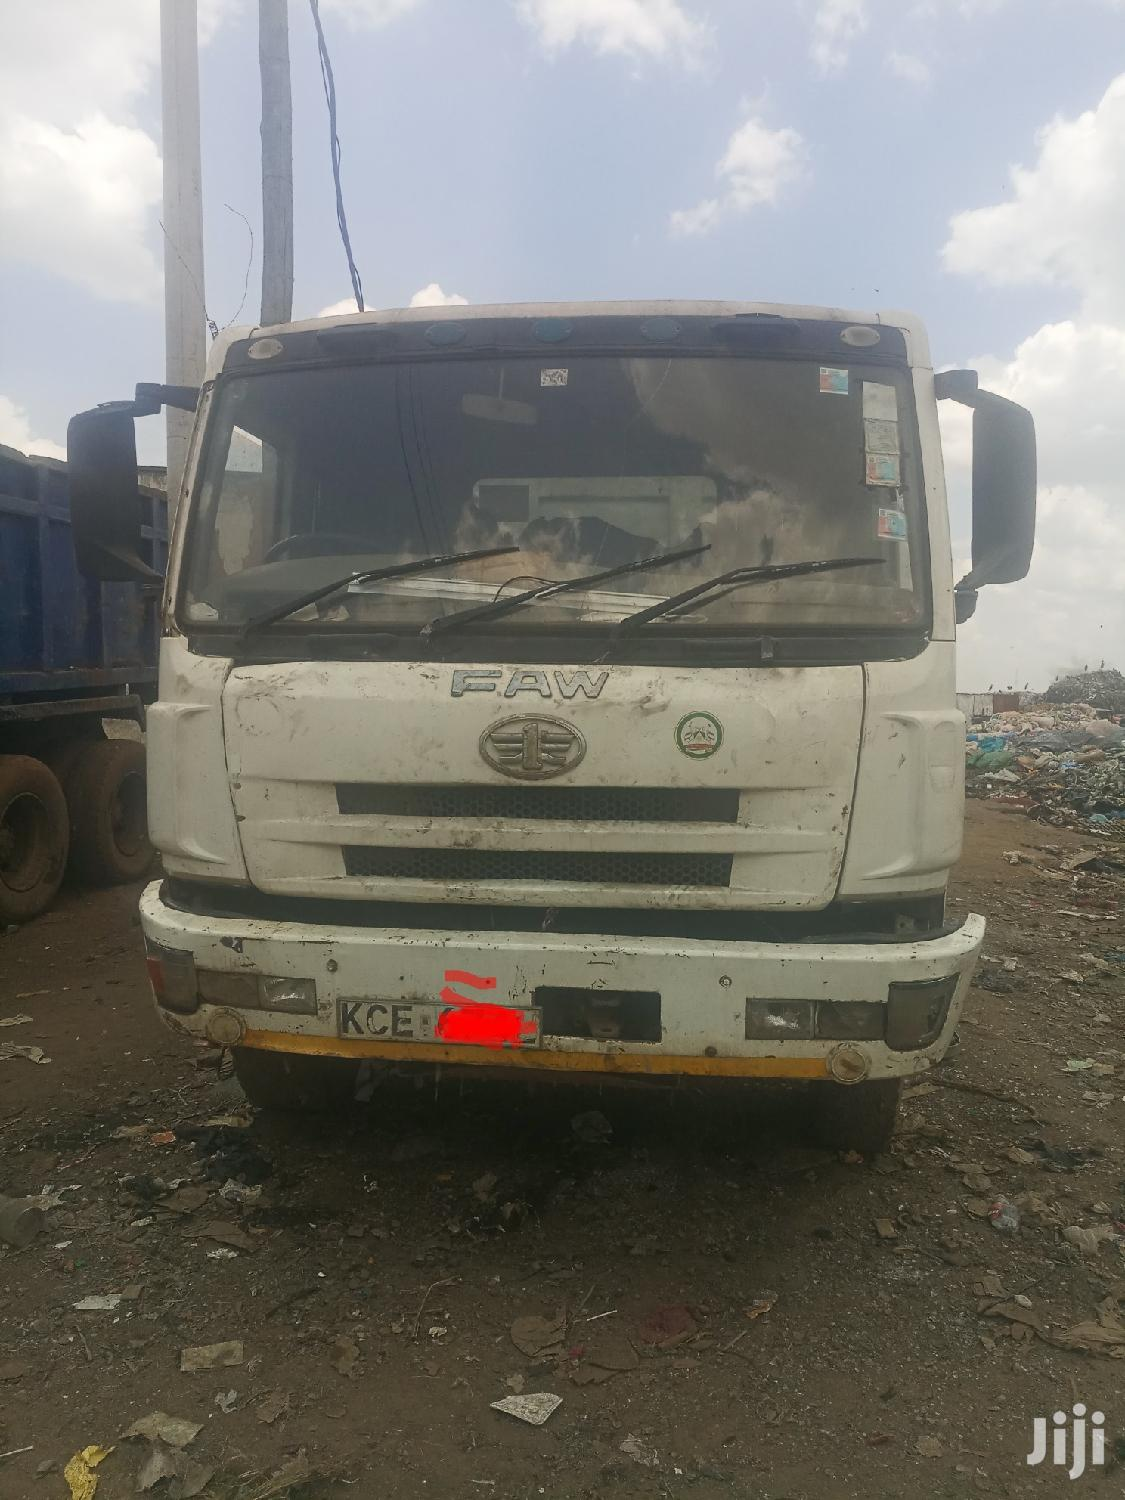 Faw Tipper Kce 2015 at 2.8M Neg